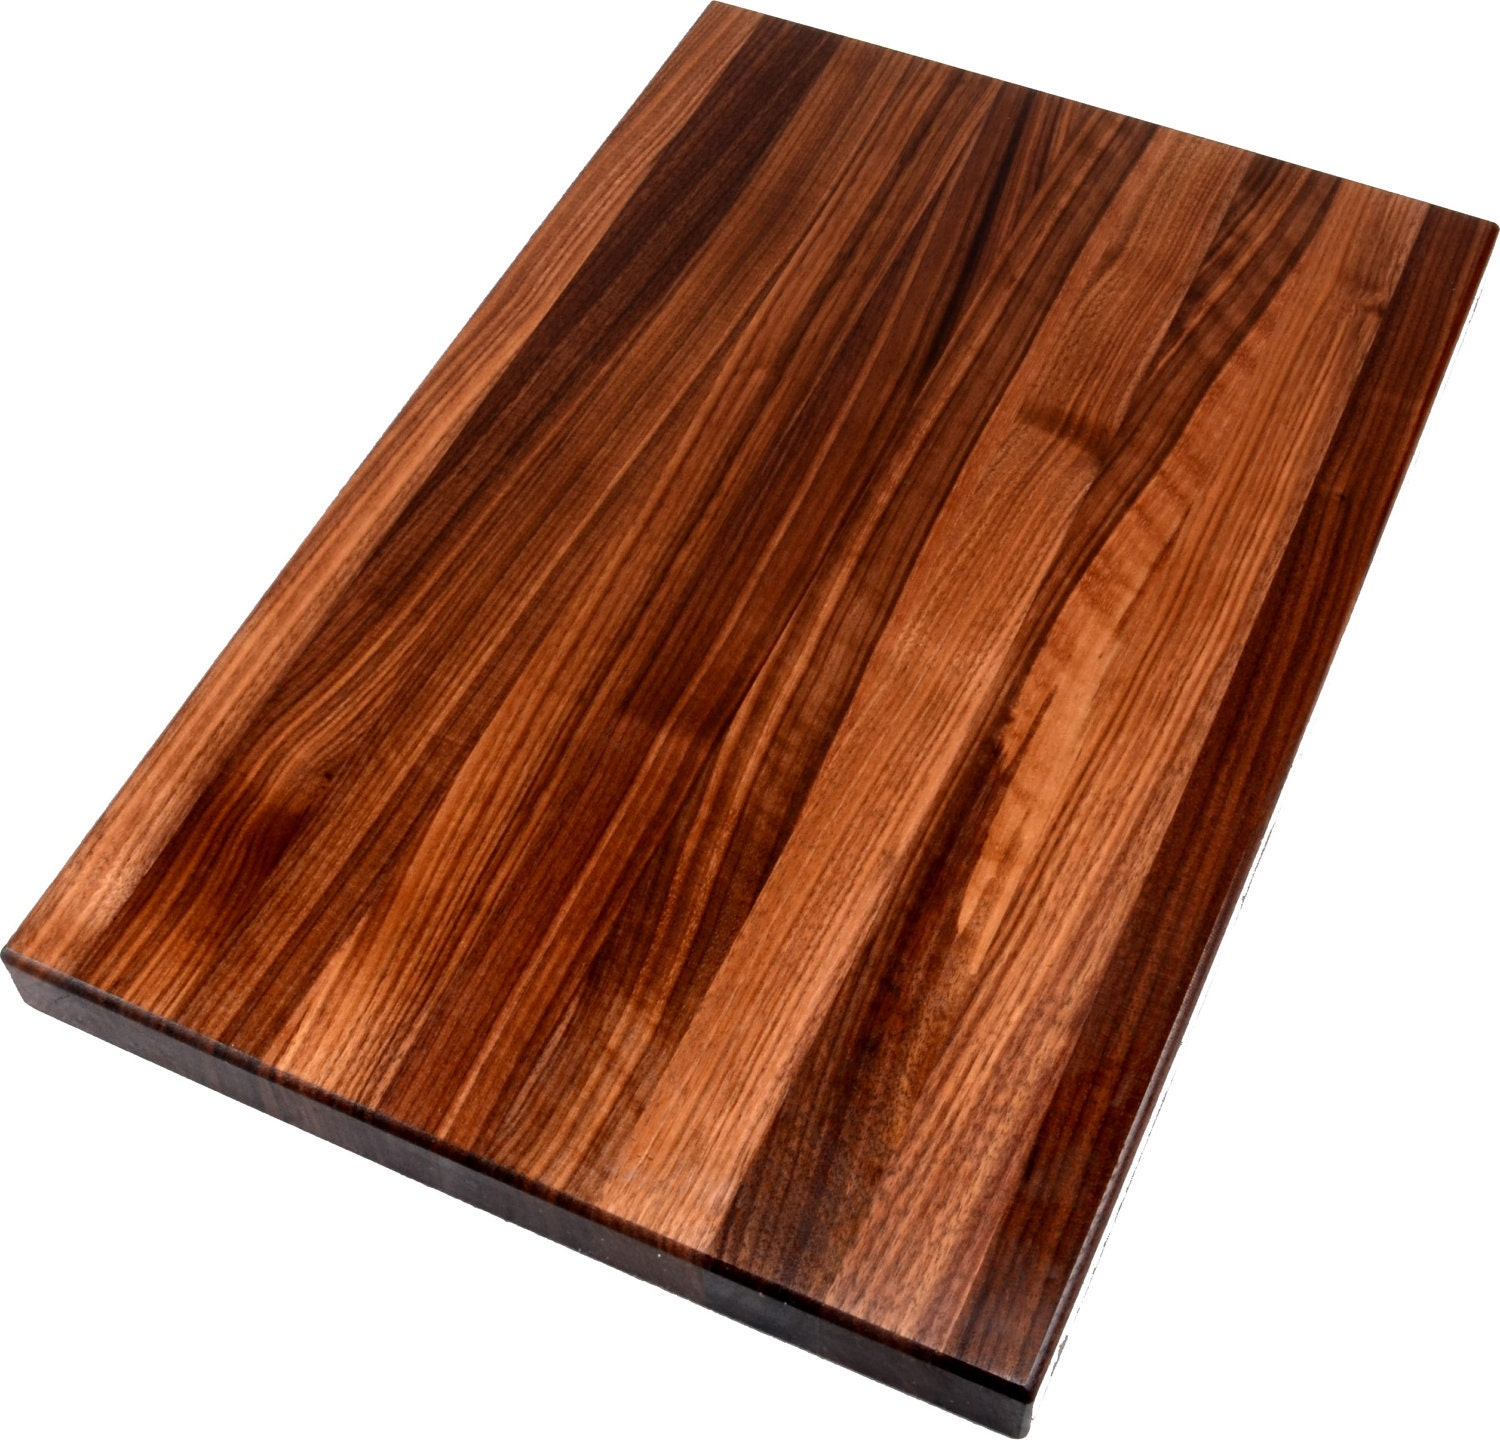 Walnut Cutting Board Kitchen Cutting Board